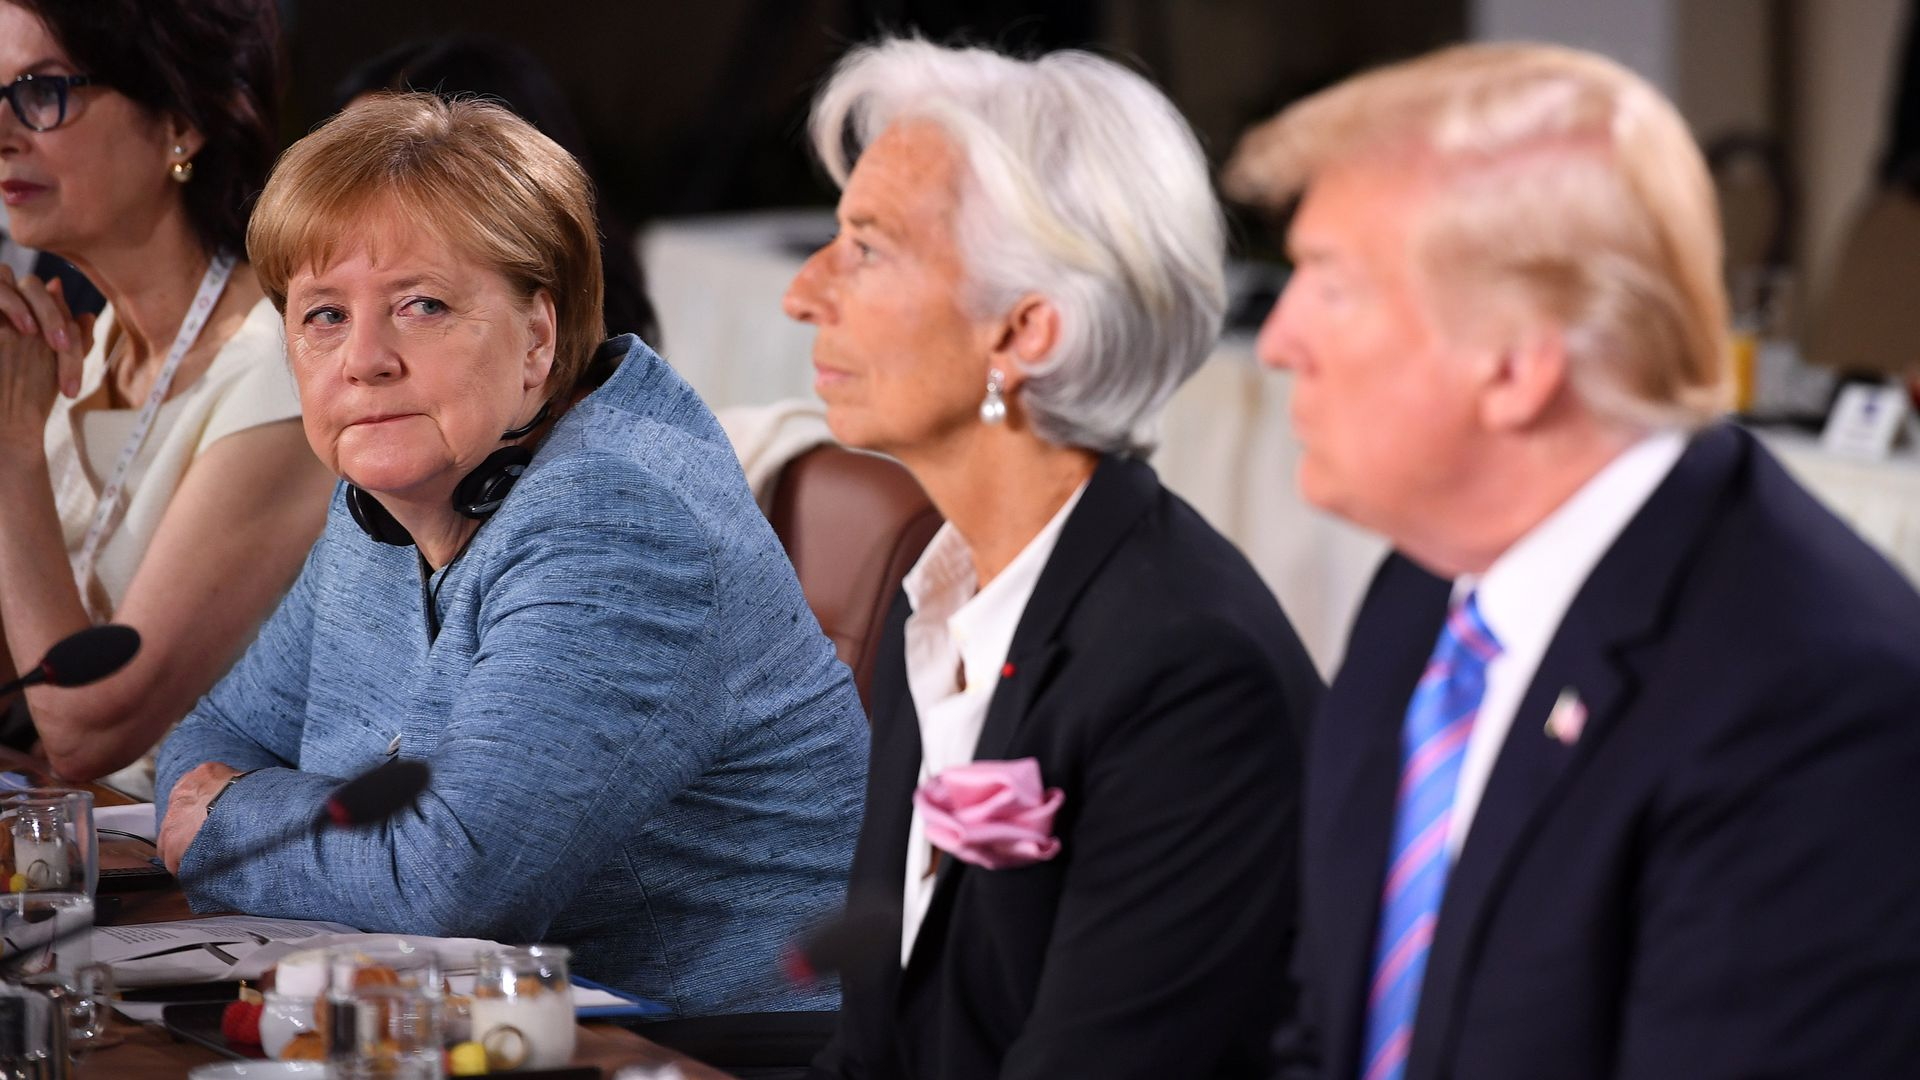 German Chancellor Angela Merkel looks towards President Donald Trump during a working breakfast at the G7 Summit on Friday in Quebec City, Canada.